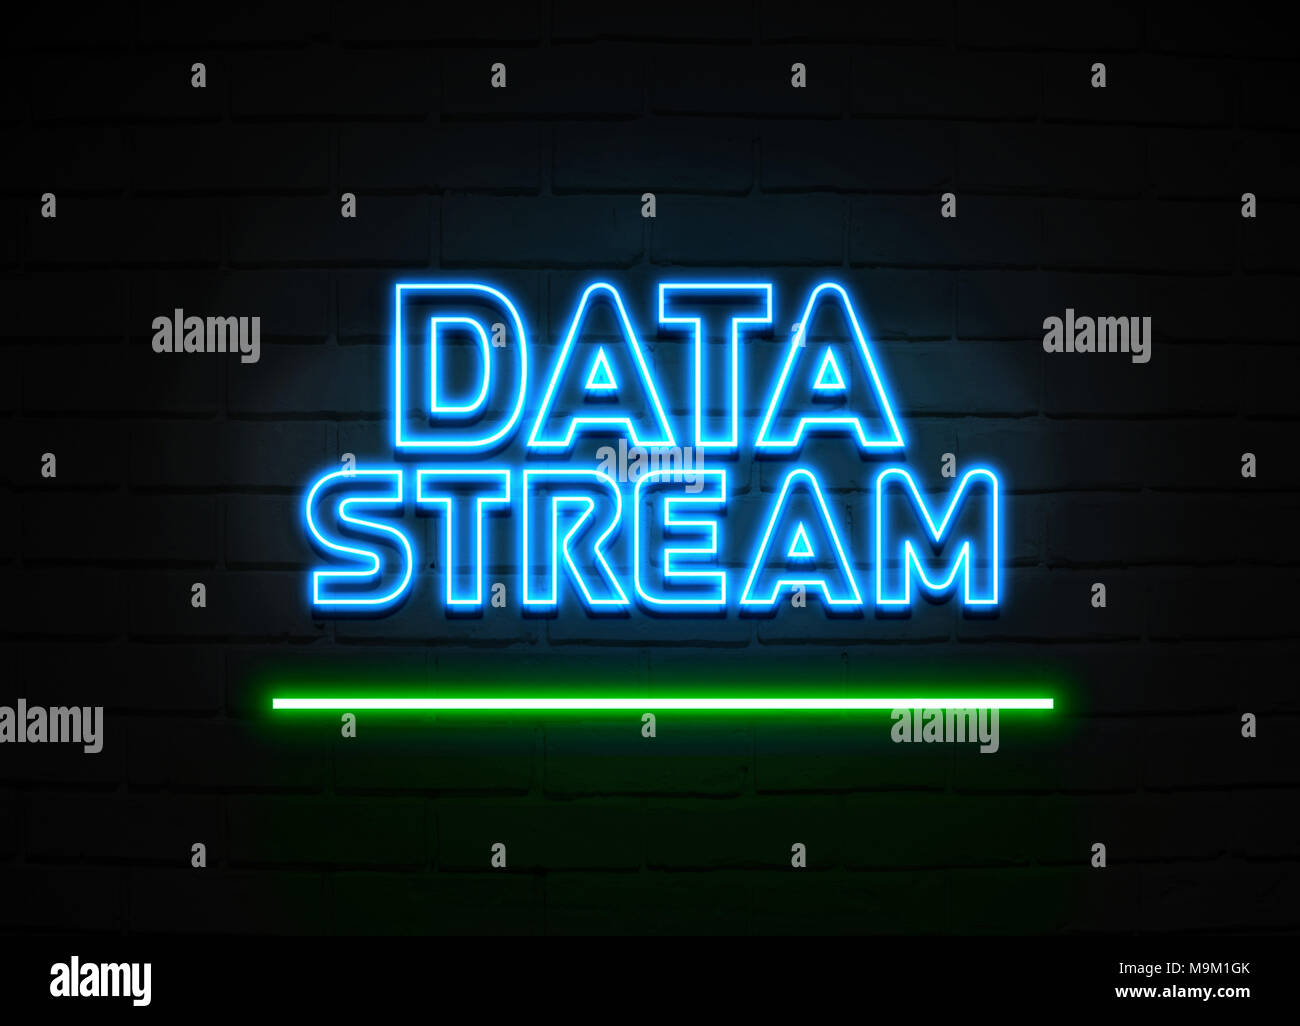 Data Stream neon sign - Glowing Neon Sign on brickwall wall - 3D rendered royalty free stock illustration. - Stock Image